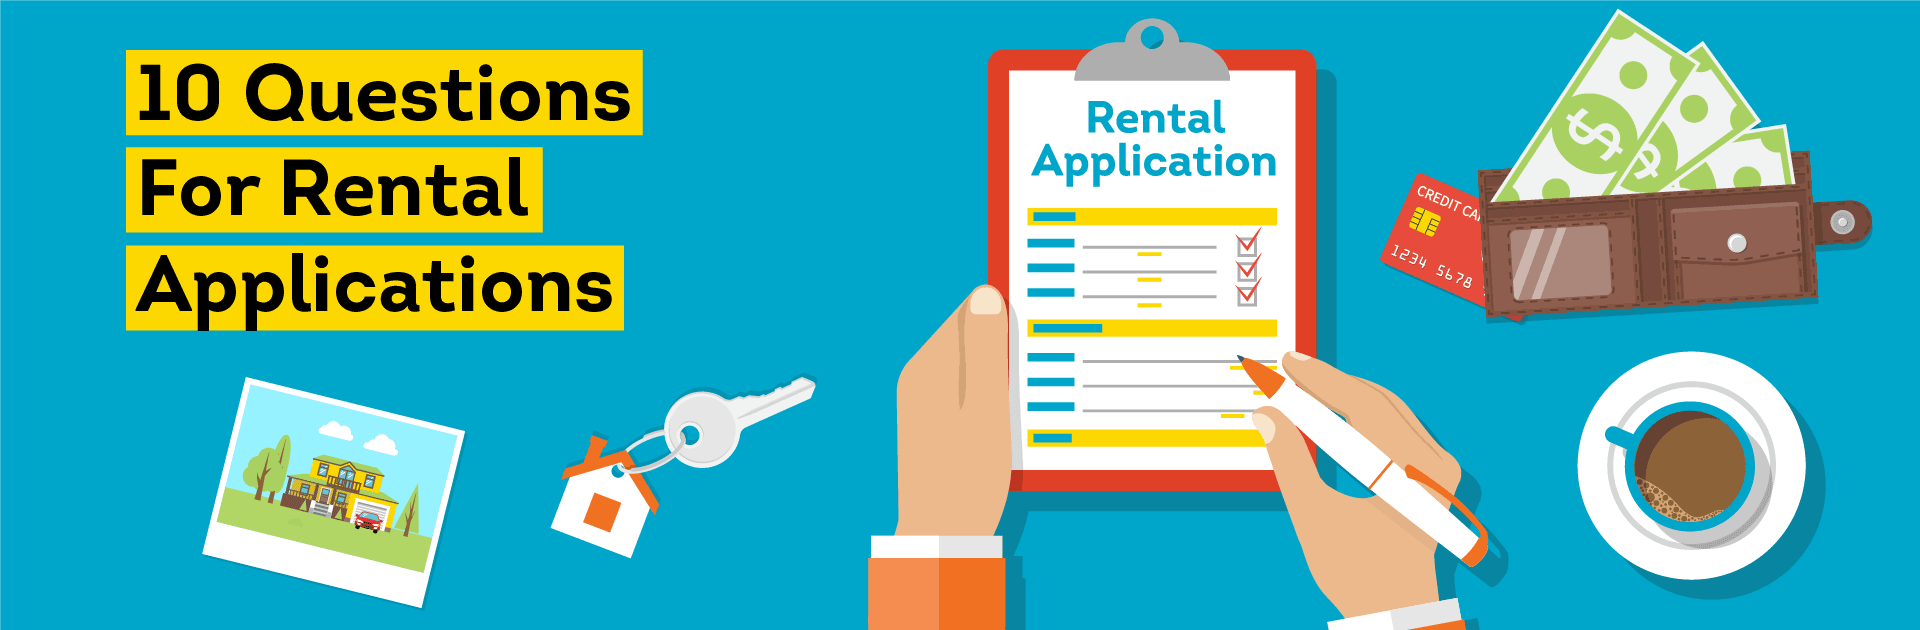 Top 10 rental application questions